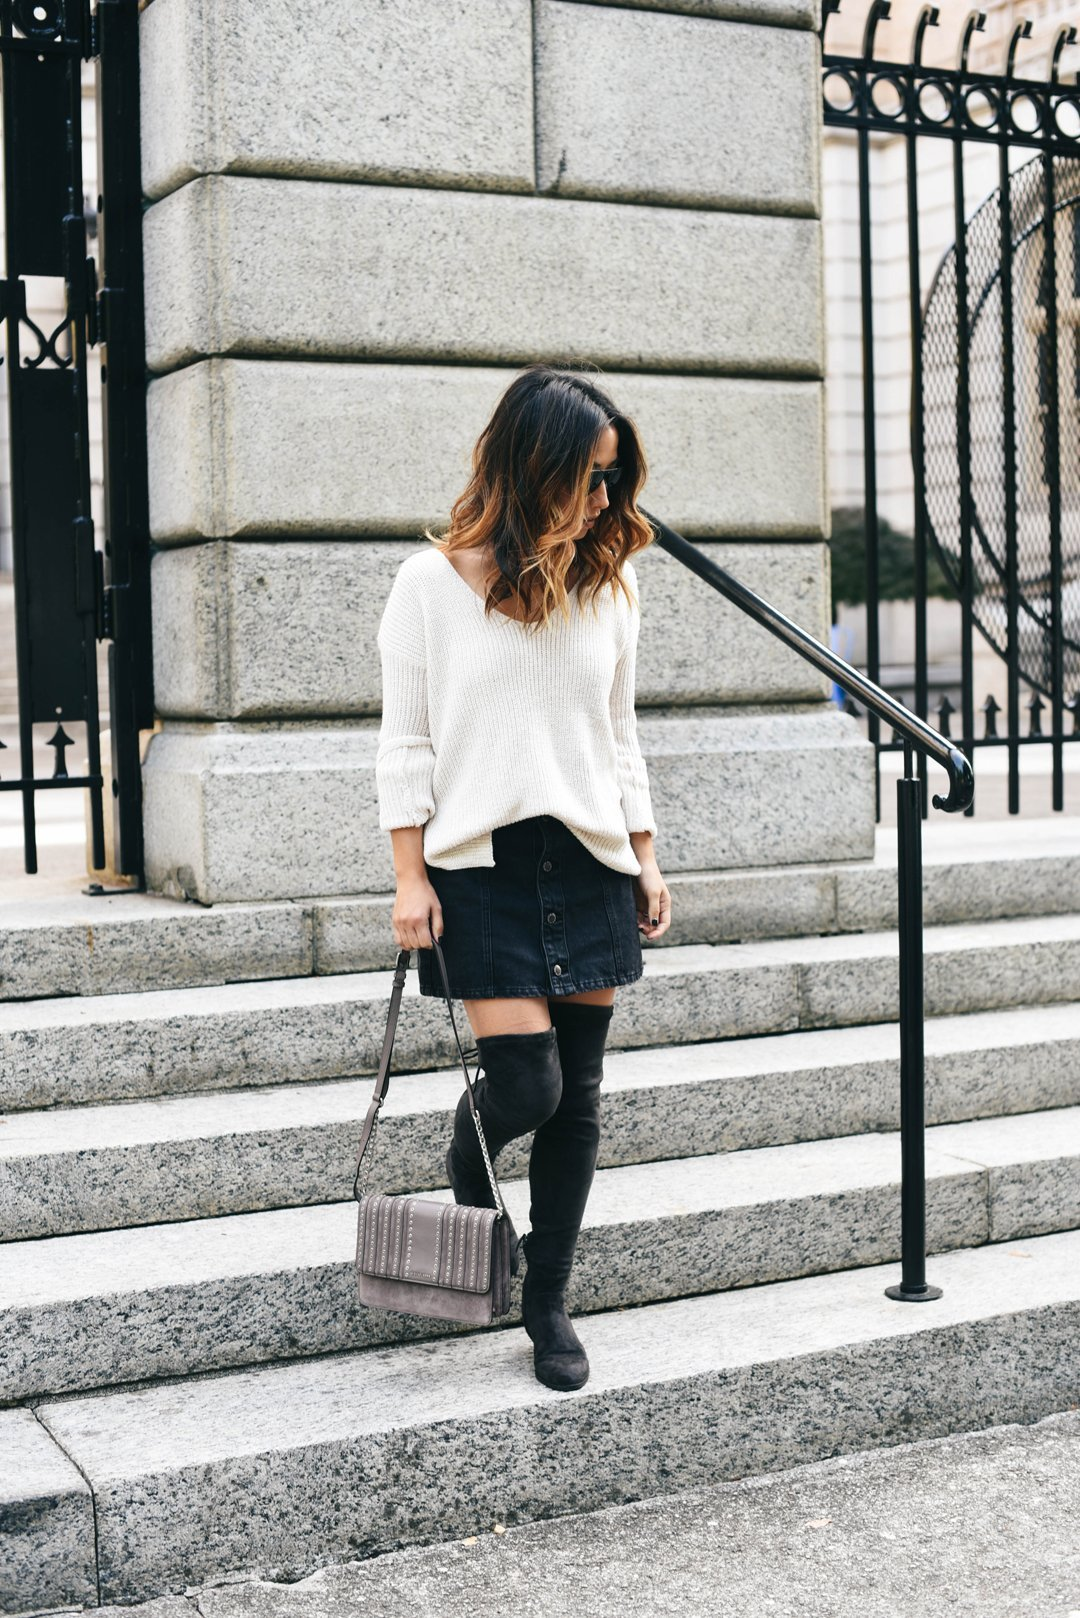 dolce-vita-neely-boots